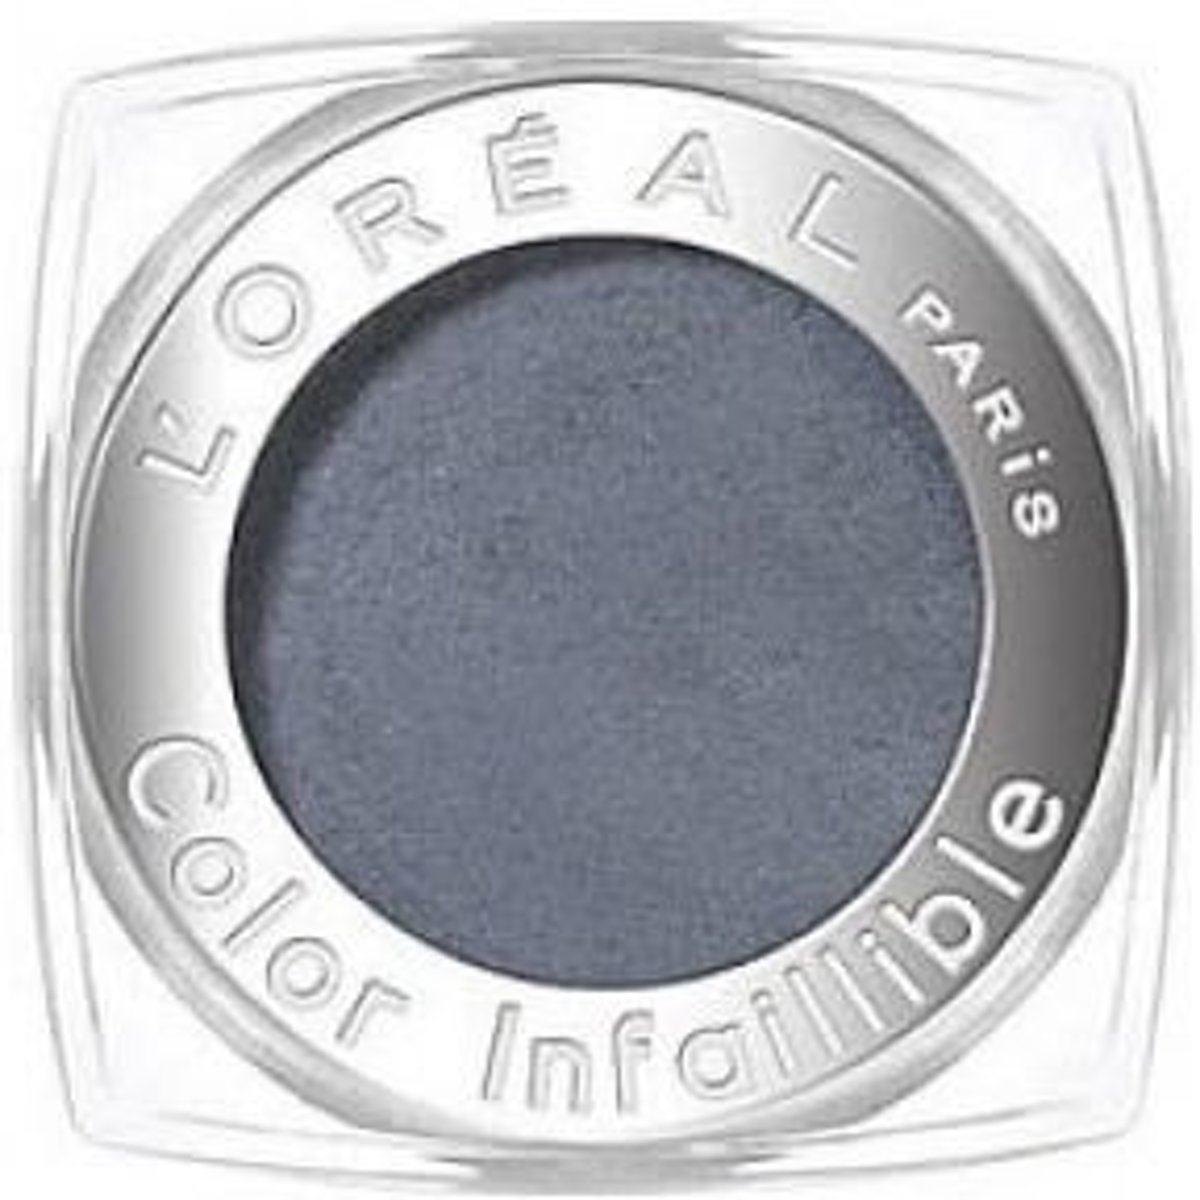 LOréal Paris Color Infallible Oogschaduw - 020 Pebble Grey